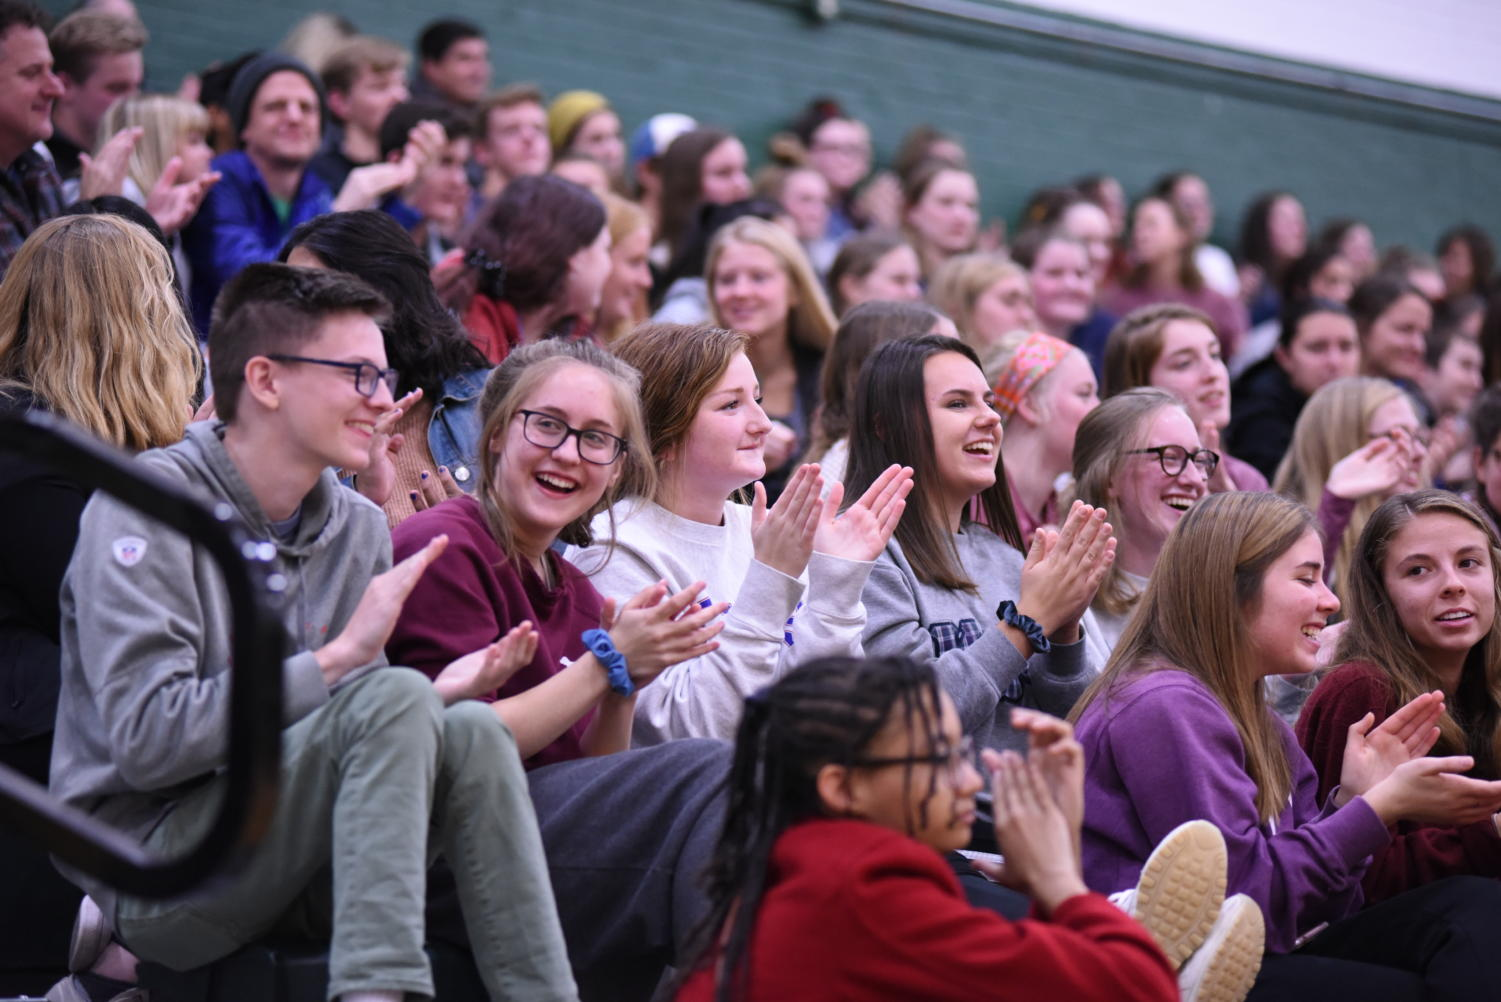 The crowd laughs and applauds a joke made by a contestant in the Mr. AmeriCAN pageant. The pageant was an event held by student council to raise cans and money for the community.